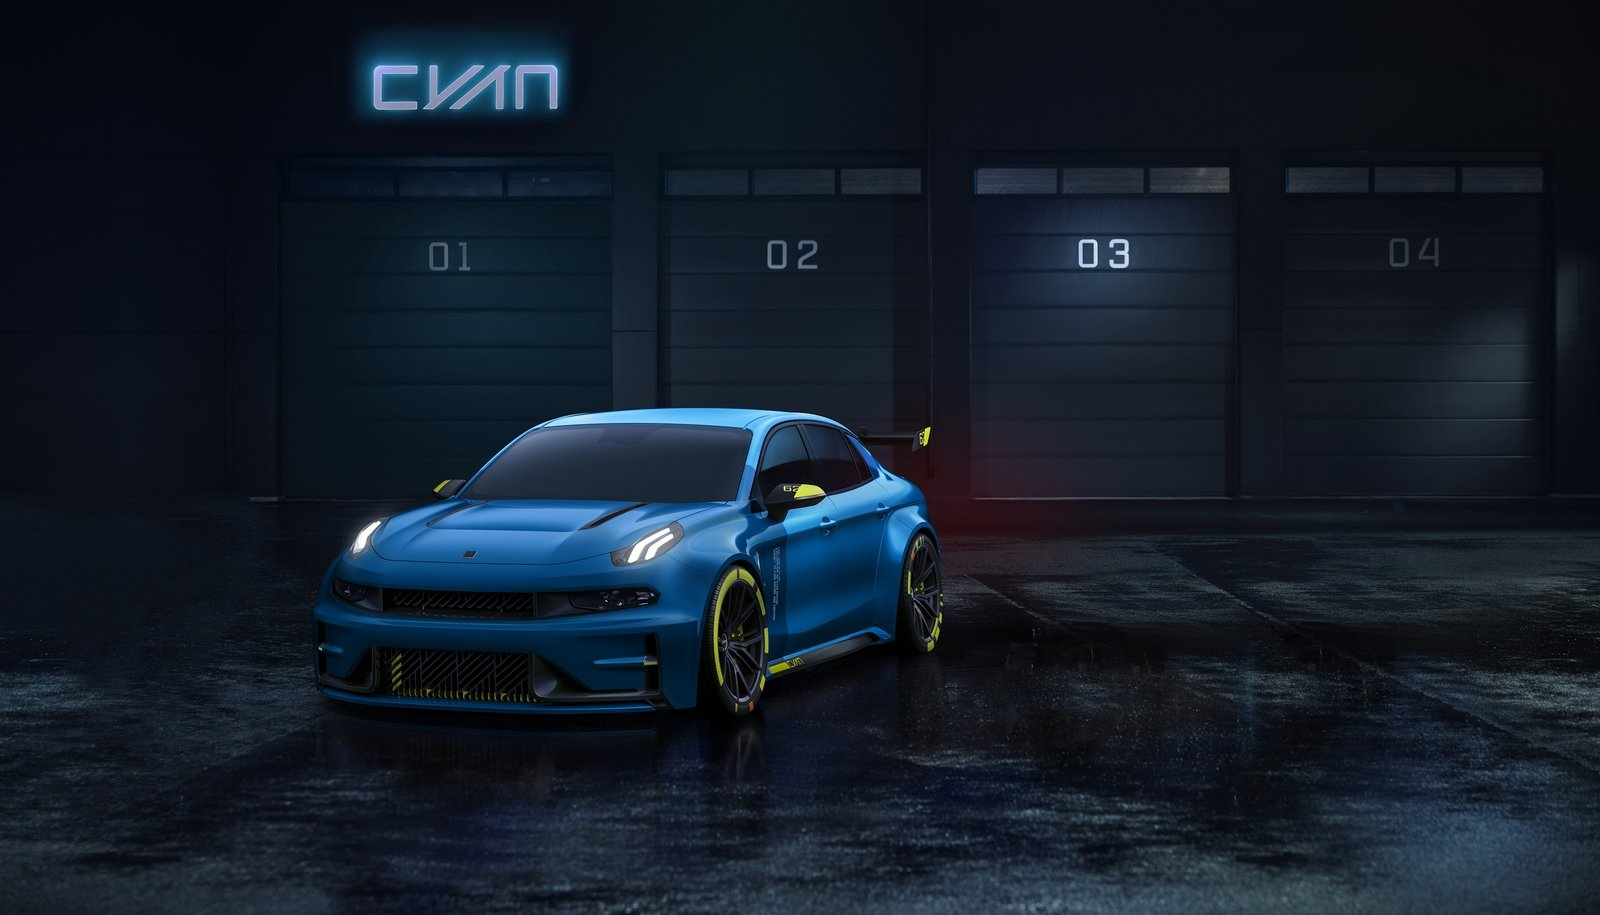 2018 Lynk & Co 03 TCR Road Car Concept By Cyan Racing | Top Speed